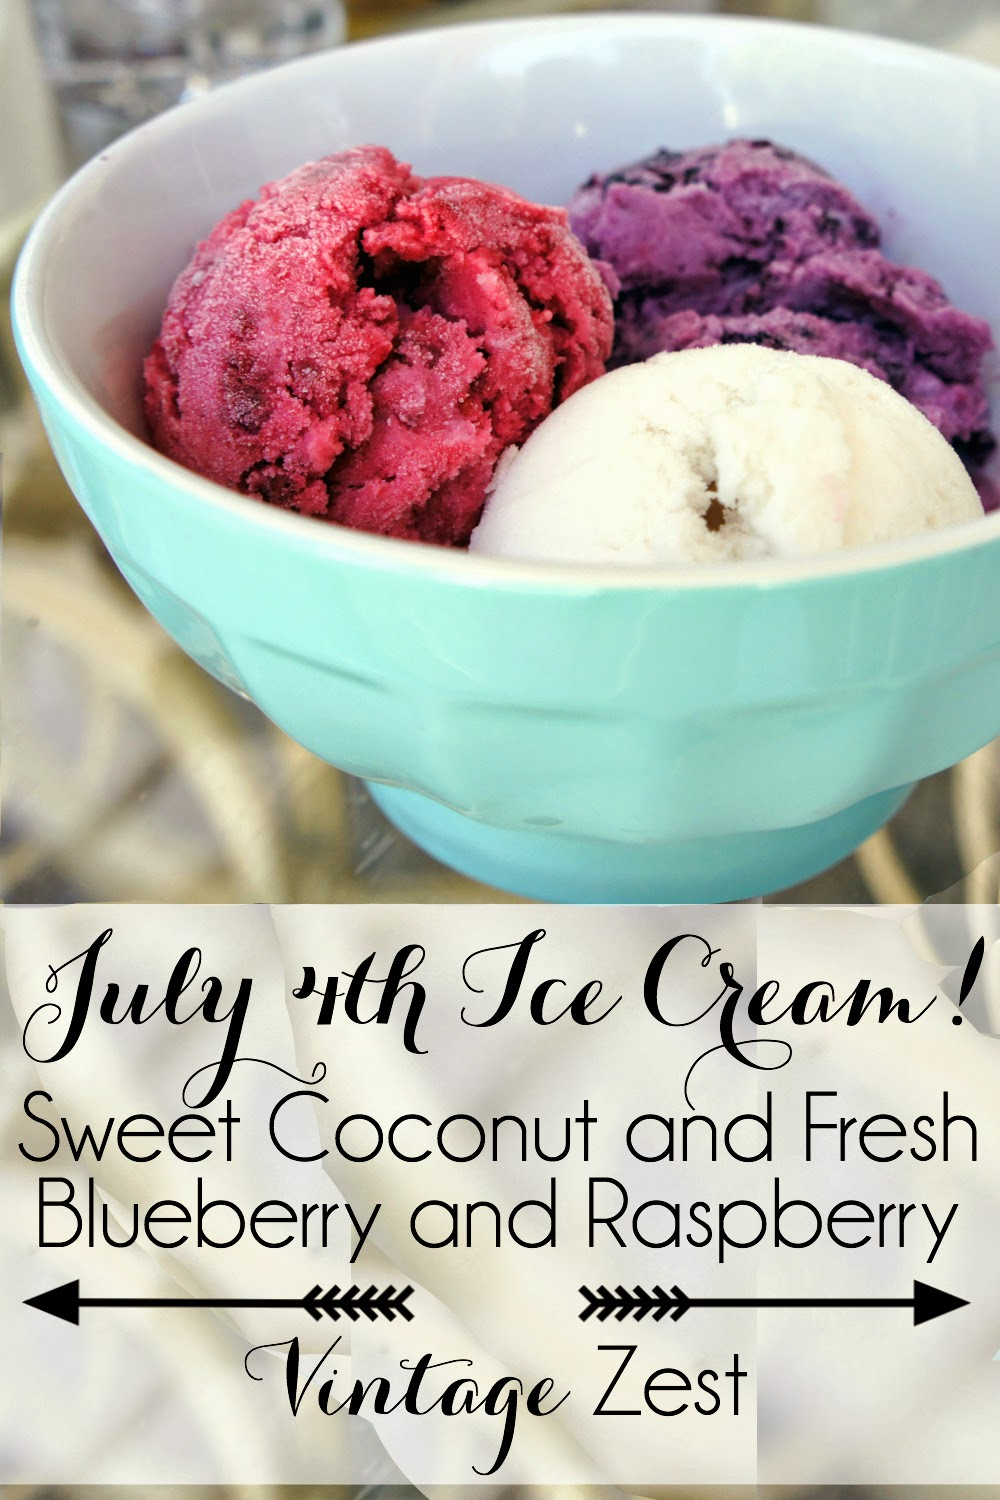 25 Creative Ice Cream Flavors + 6 Serving Ideas and No-Churn Recipes on Diane's Vintage Zest!